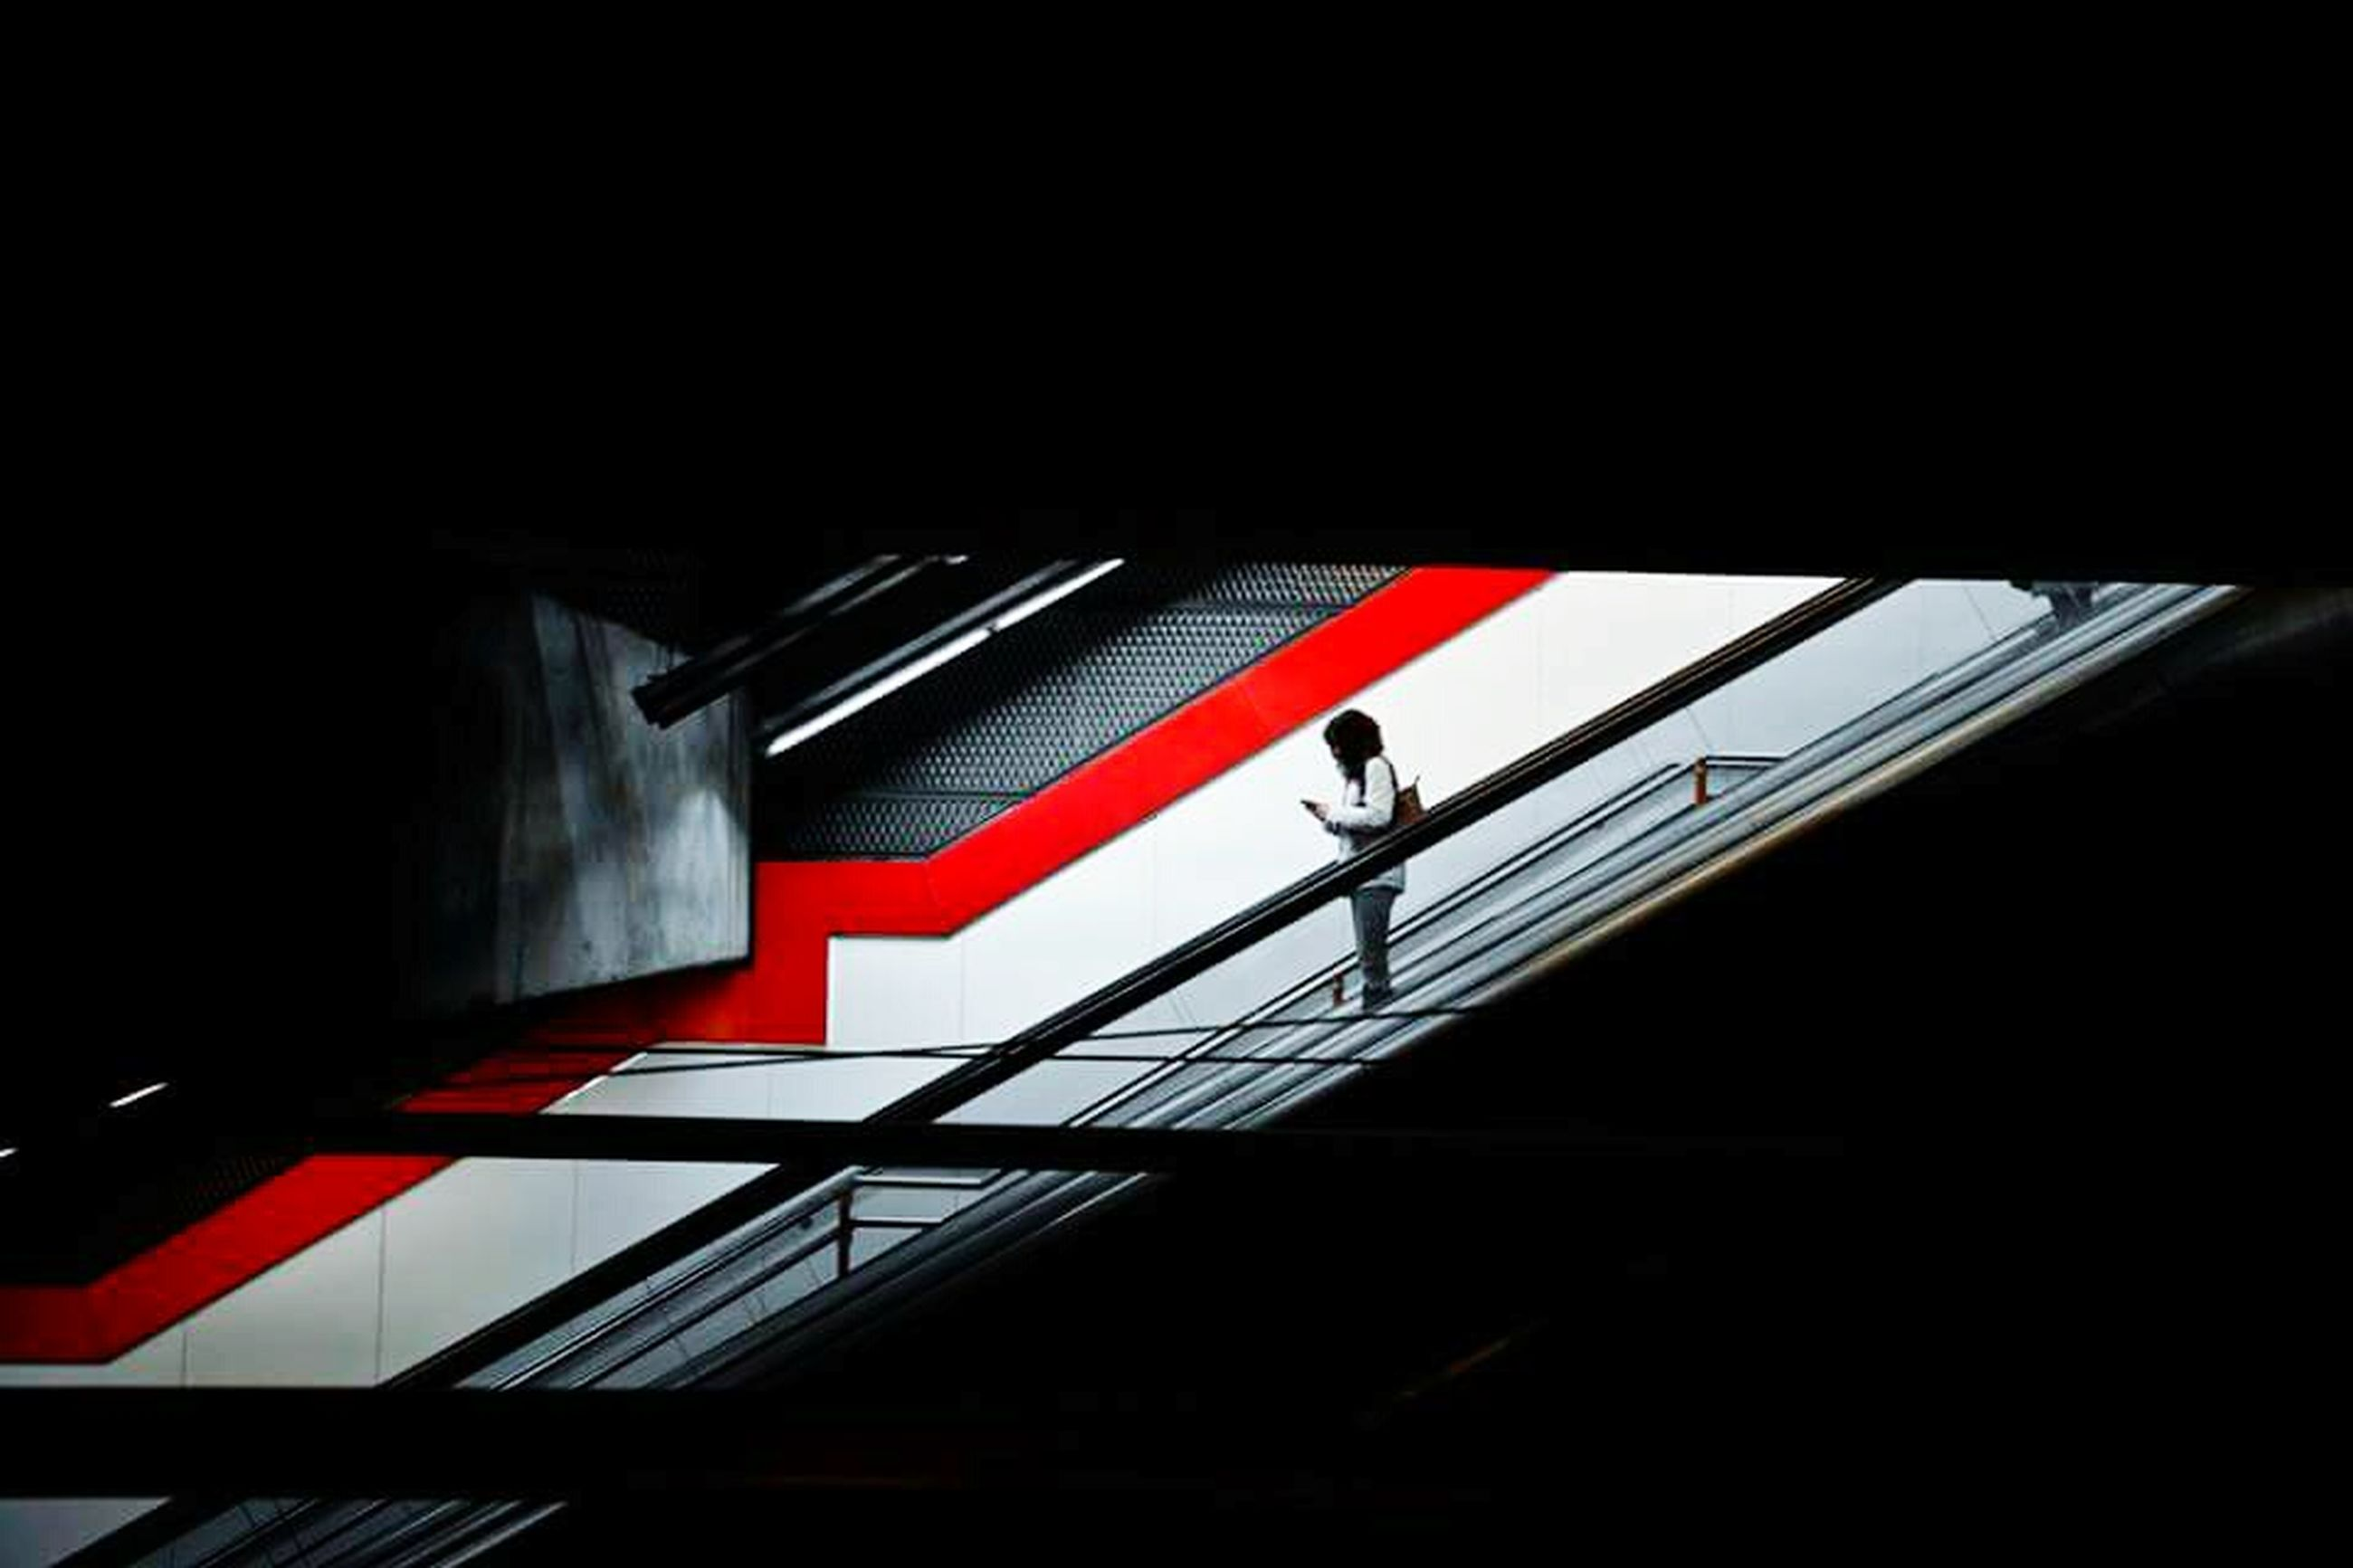 steps and staircases, railing, steps, built structure, staircase, indoors, architecture, low angle view, copy space, red, escalator, transportation, bridge - man made structure, dark, stairs, connection, sunlight, walking, men